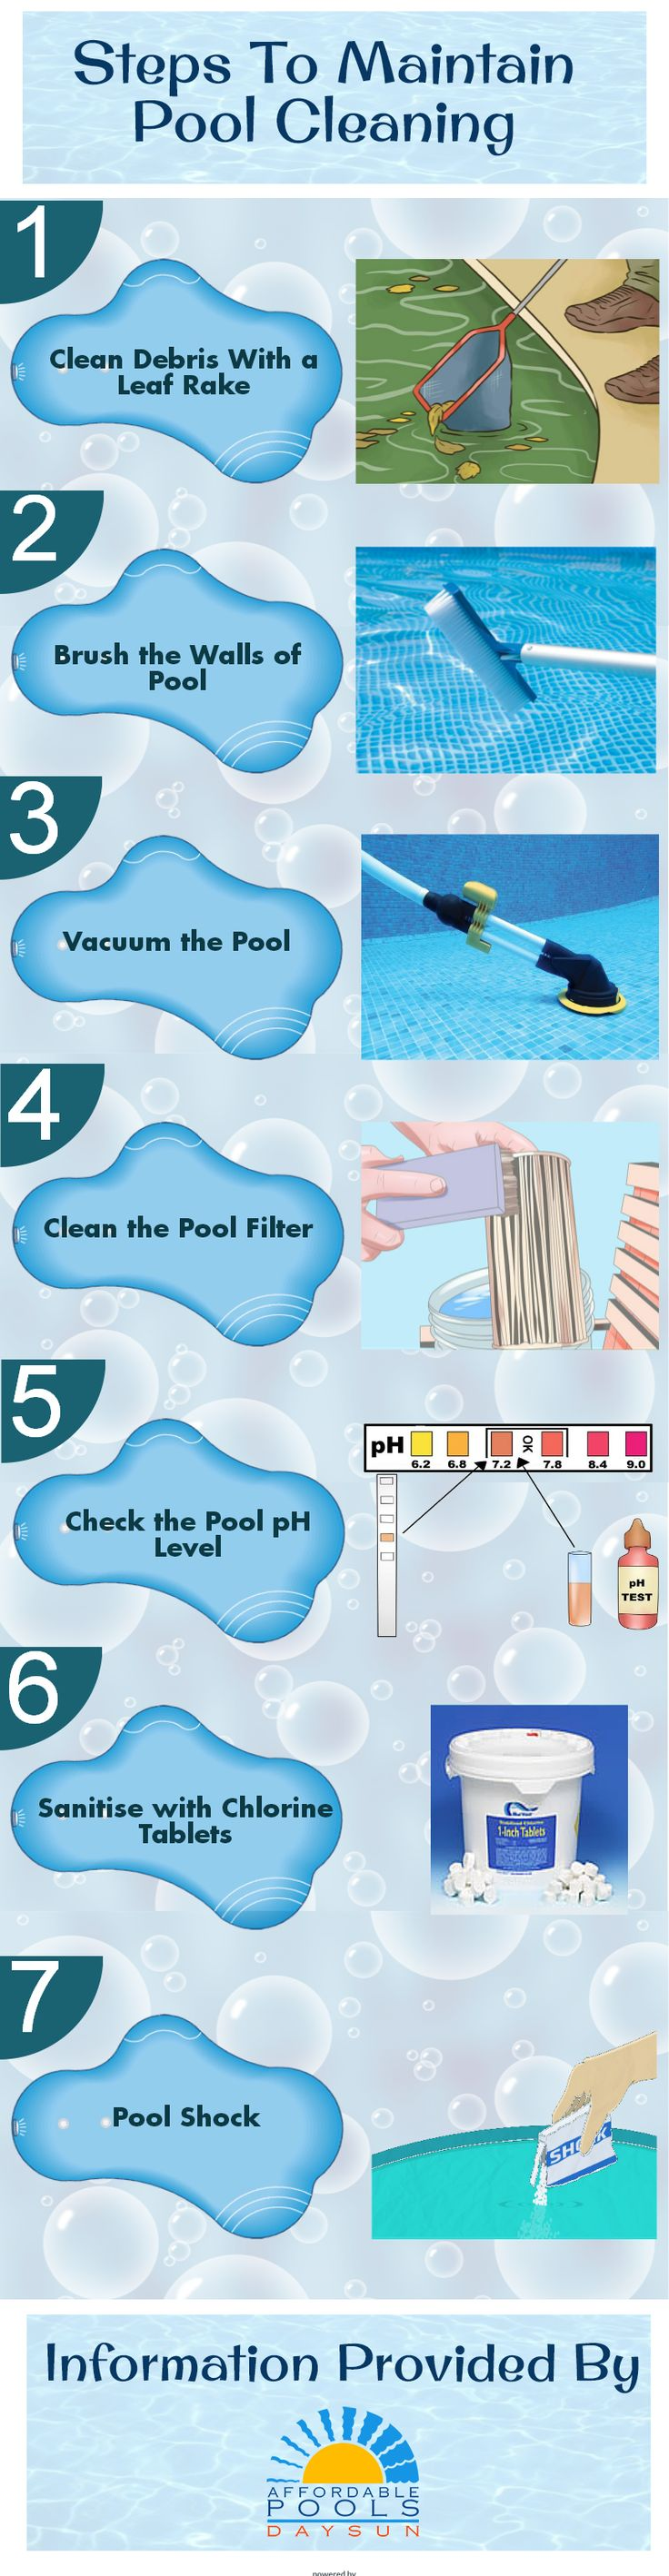 Swimming pools require proper cleaning and maintenance. The various maintenance steps involve cleaning debris with a leaf rake, brushing the walls of pool, vacuuming the pool, cleaning the pool filter, check the pool PH level, santise with chlorine tablets, pool shocking, etc. For more details go through this infographic.